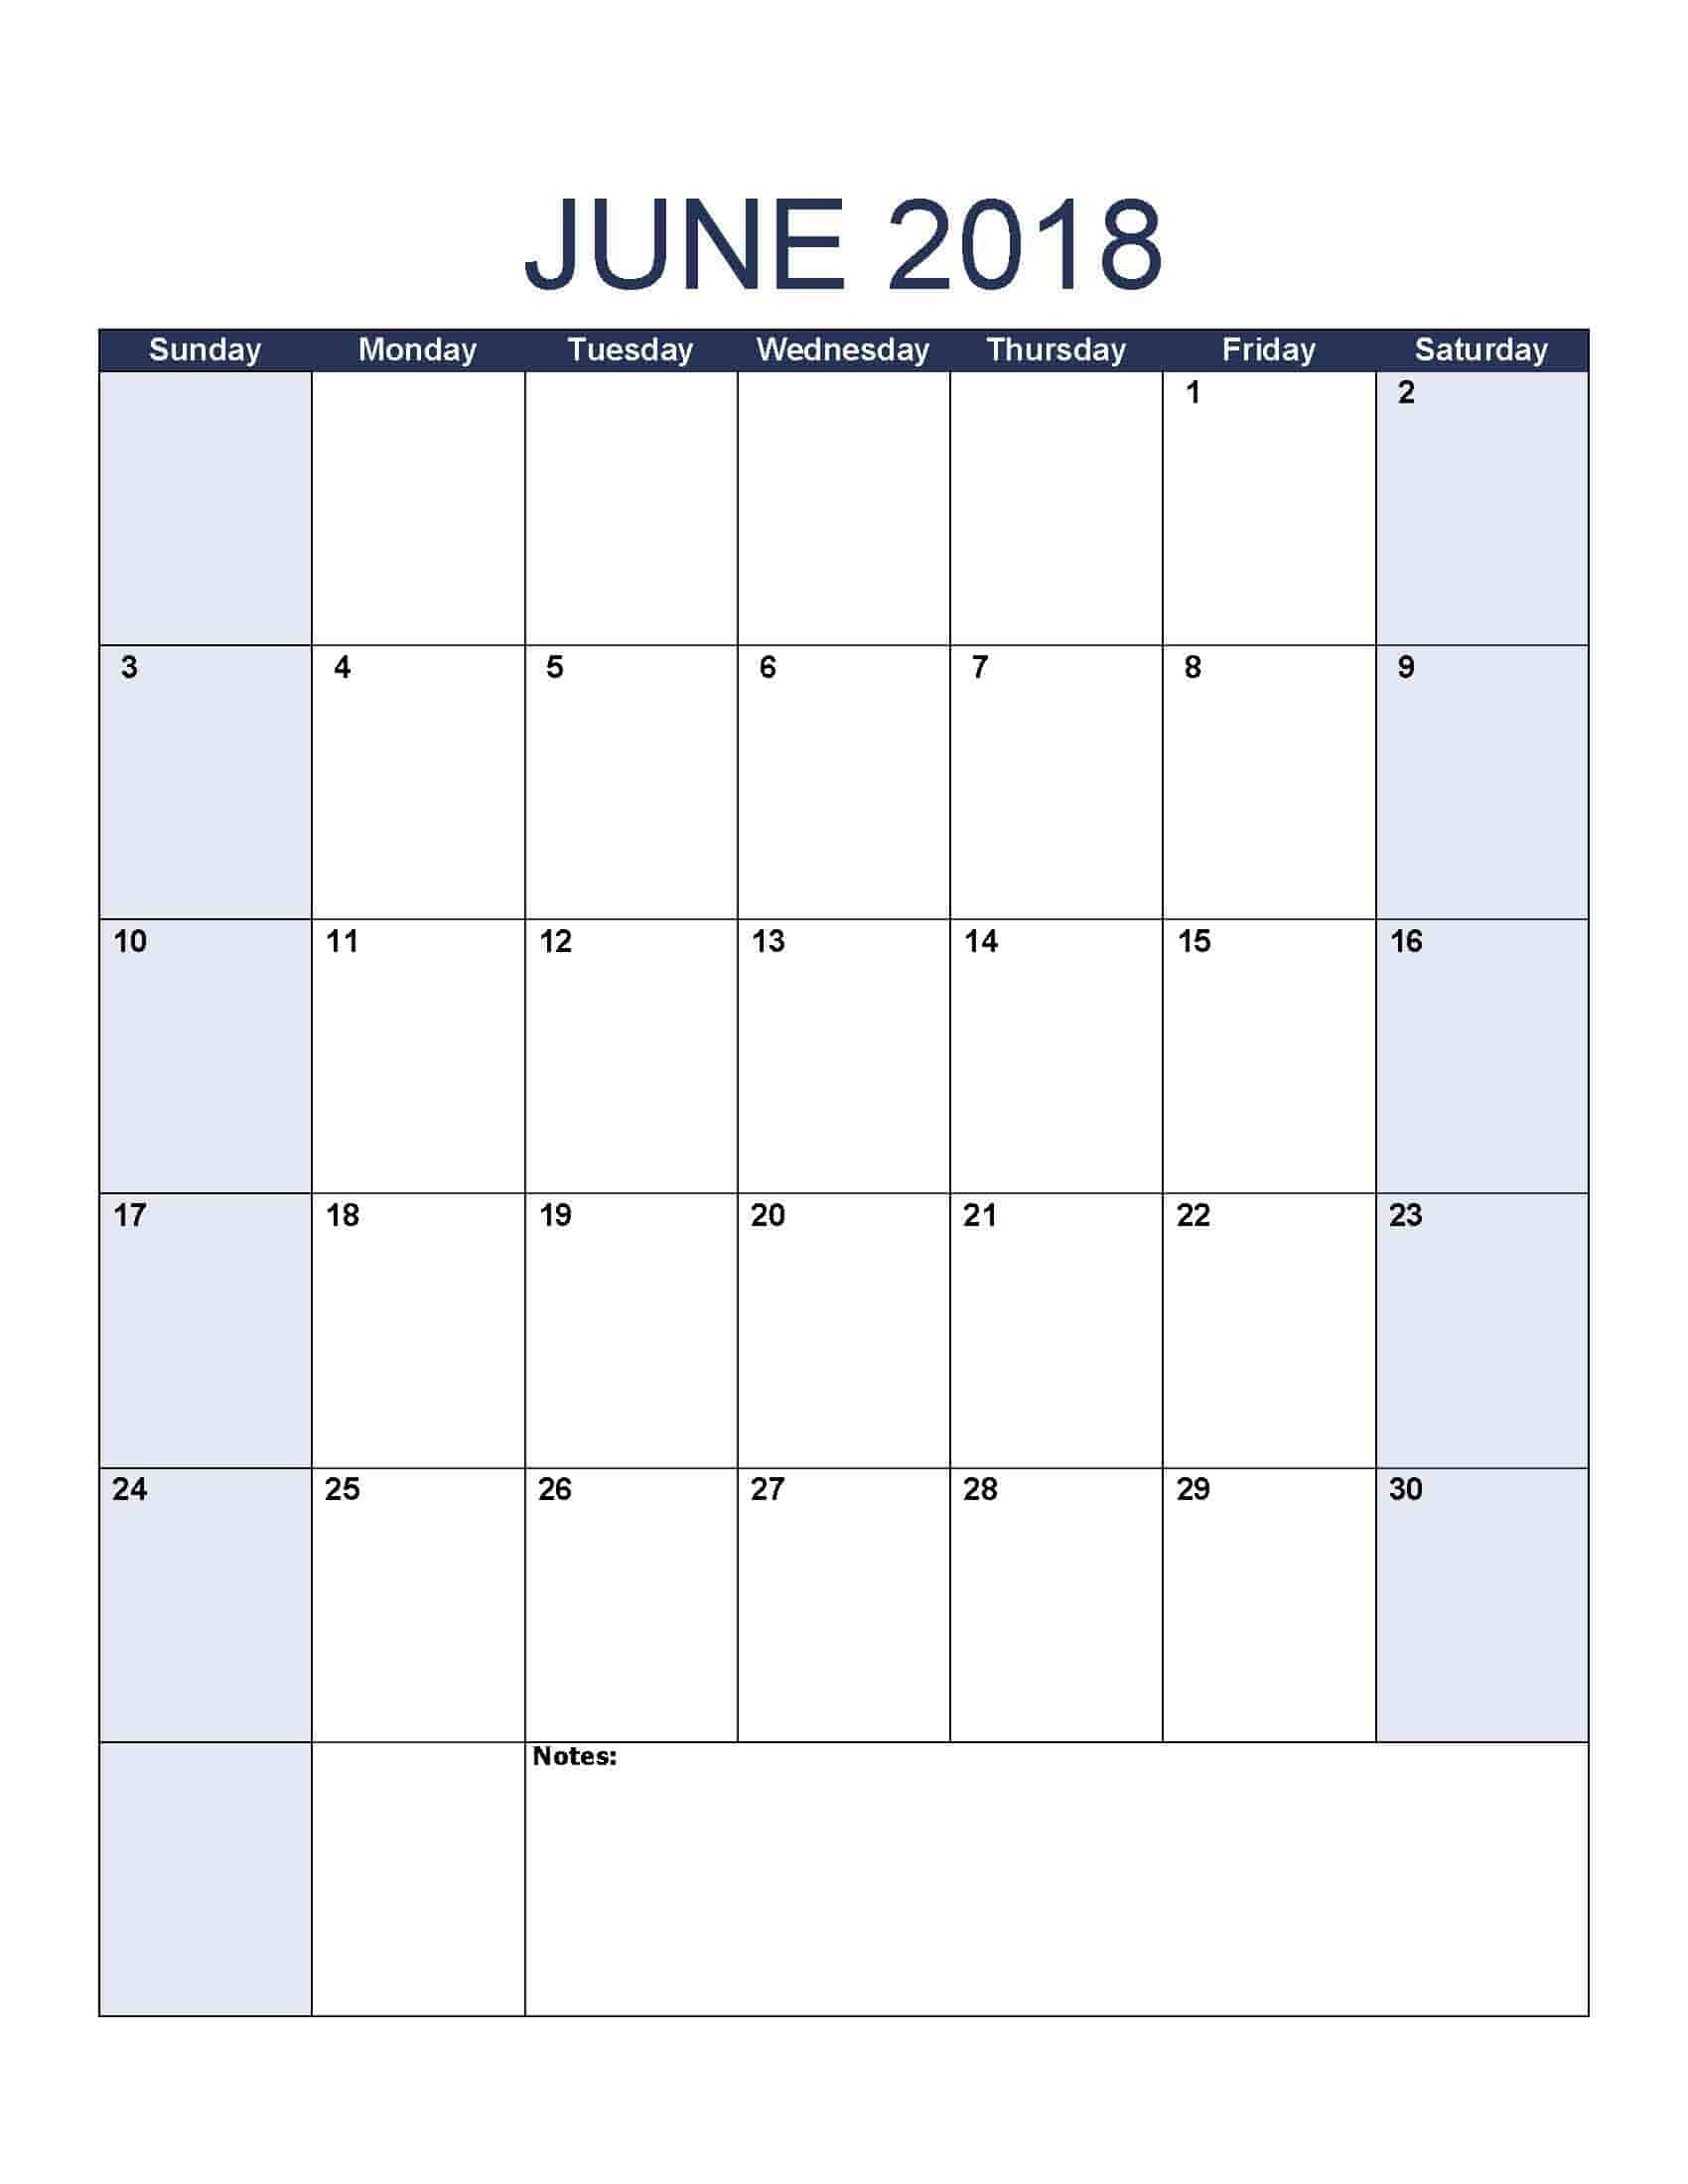 June 2018 Calendar - Free, Printable Calendar Templates  Free Calendar Templates For The Blind